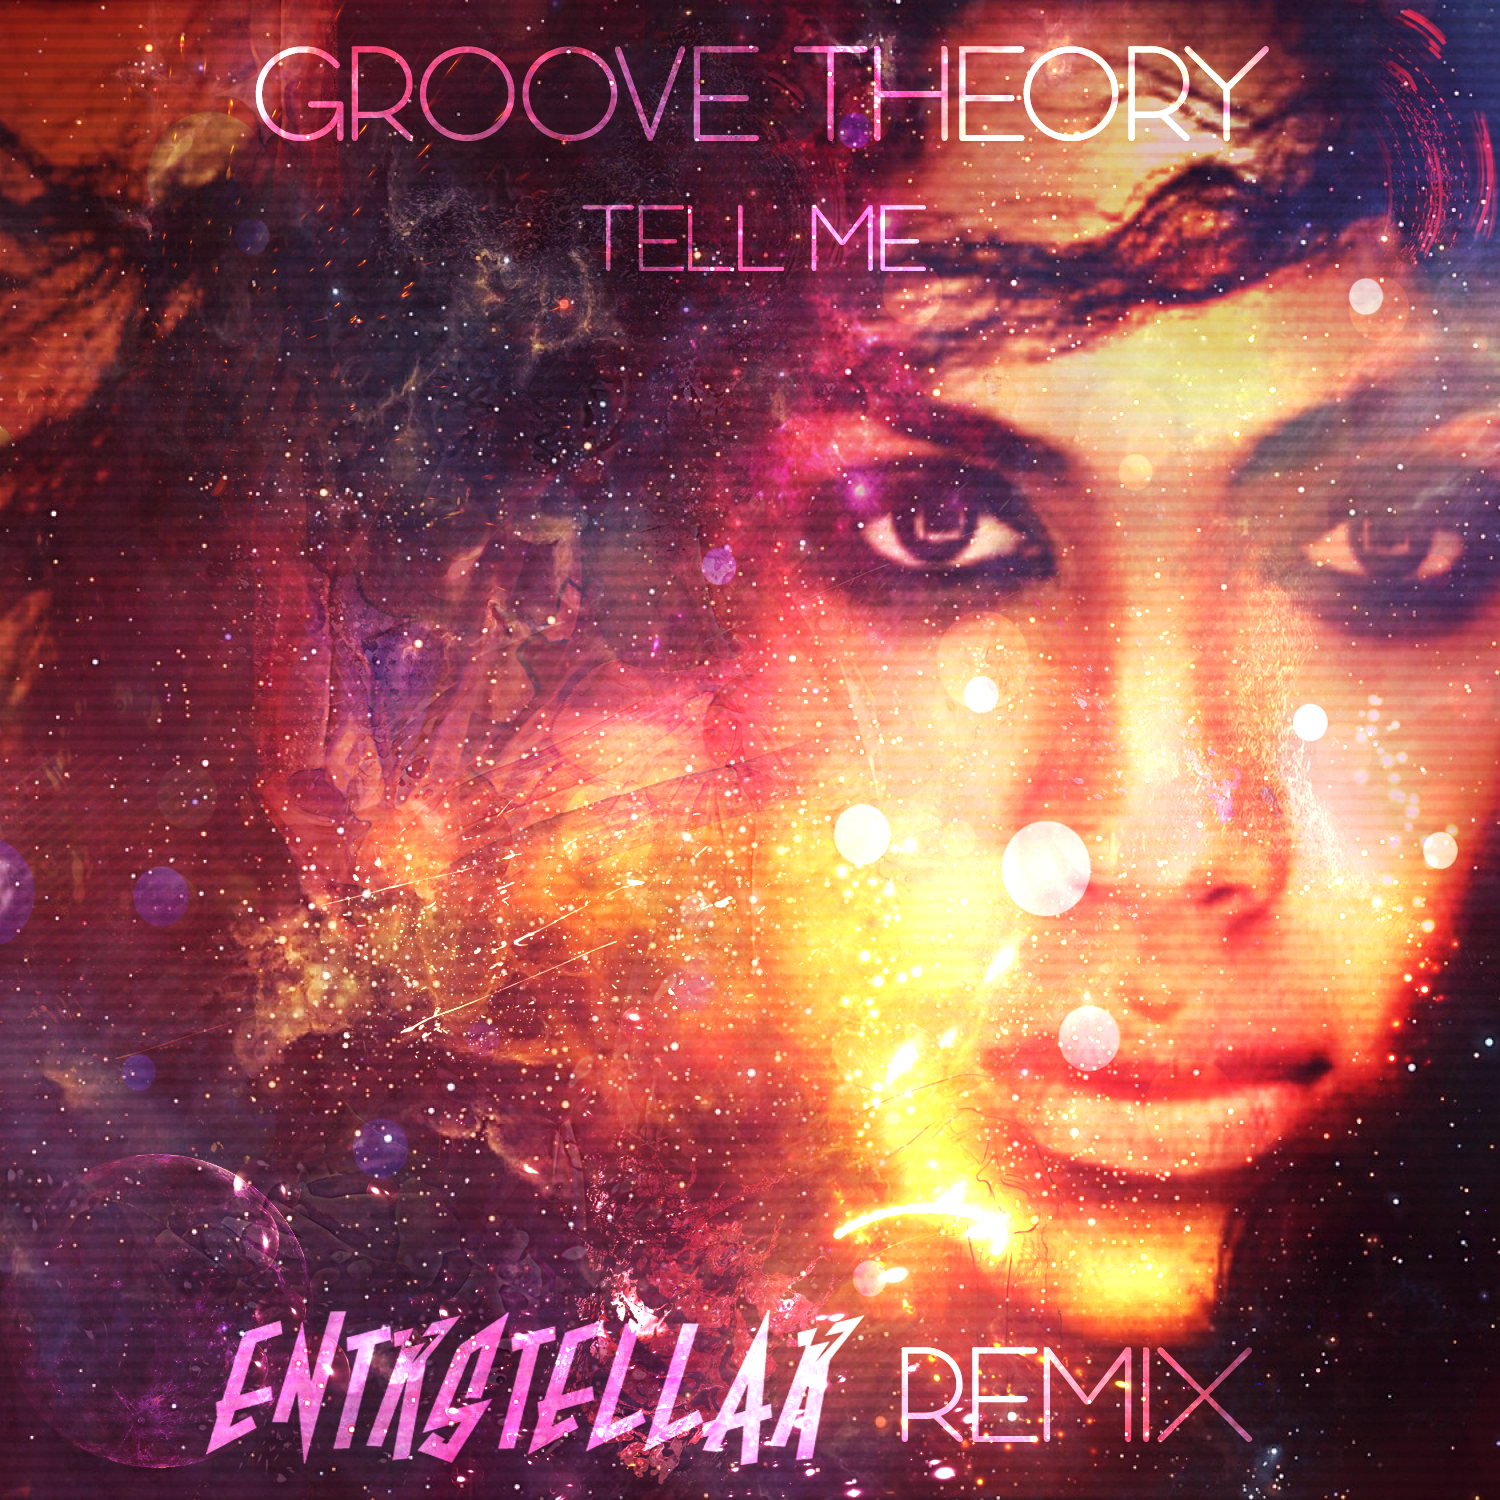 Groove Theory - Tell Me (ENTRSTELLAR REMIX)